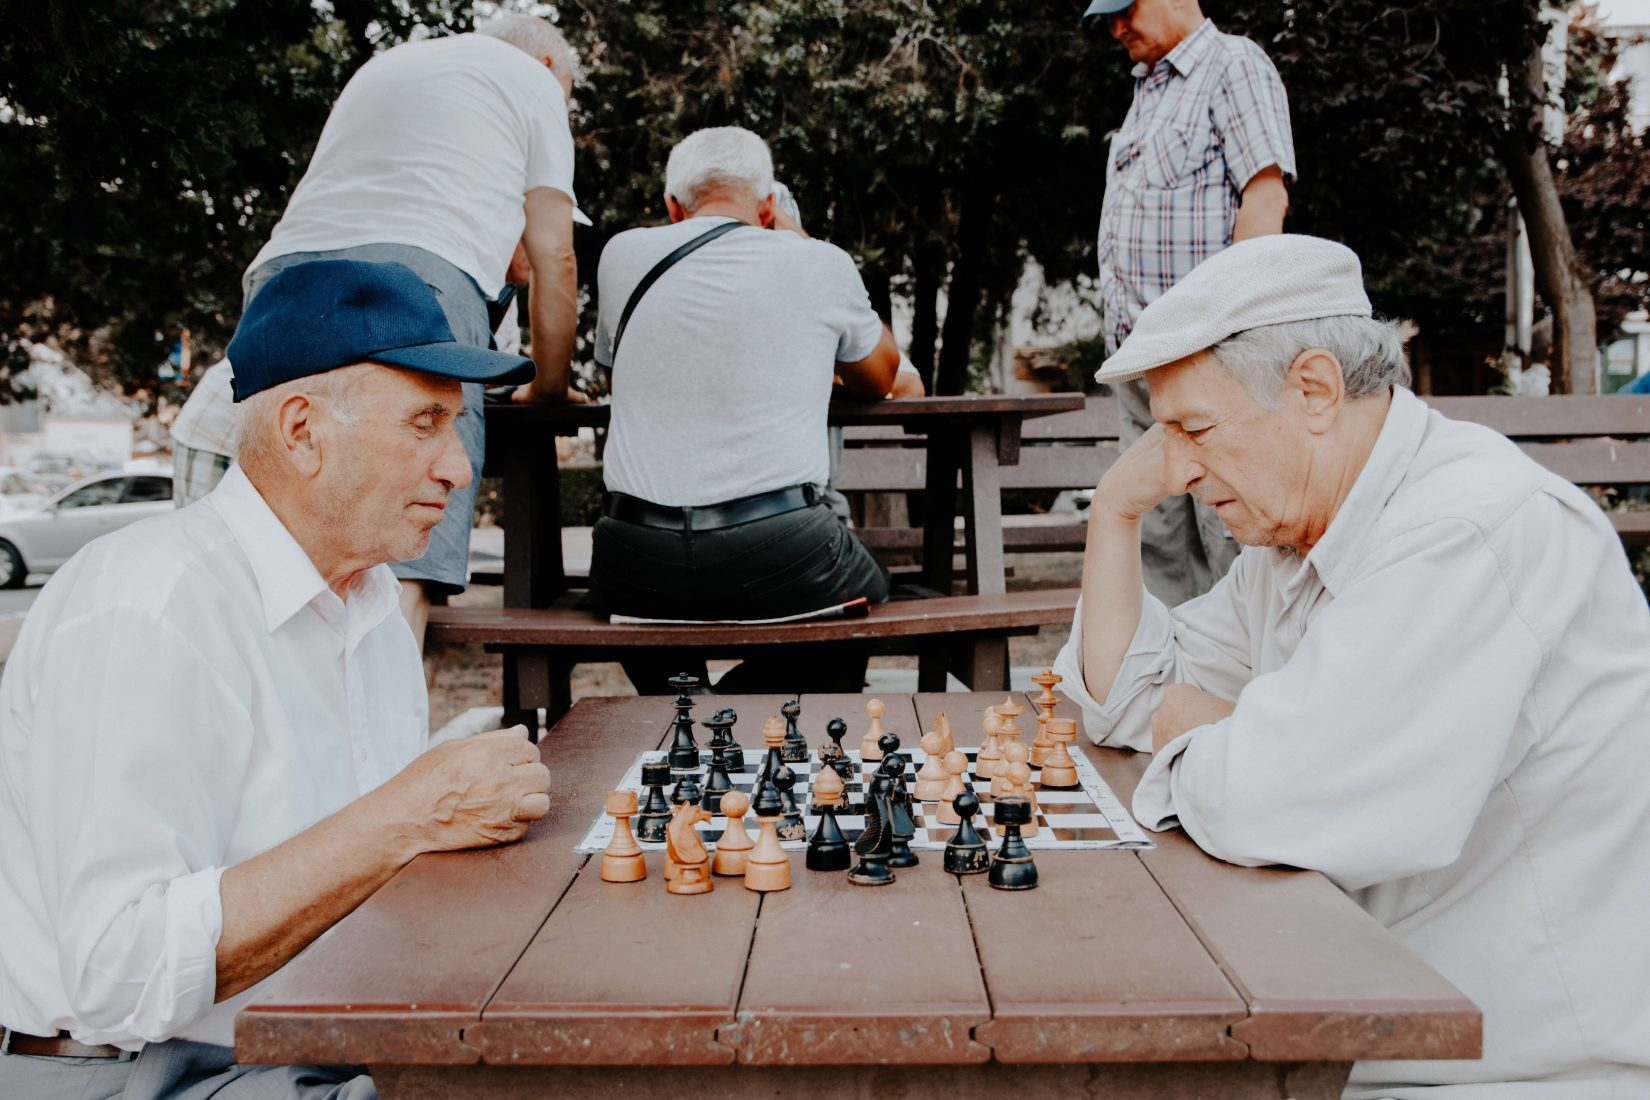 Two older men playing chess in a park at a picnic bench